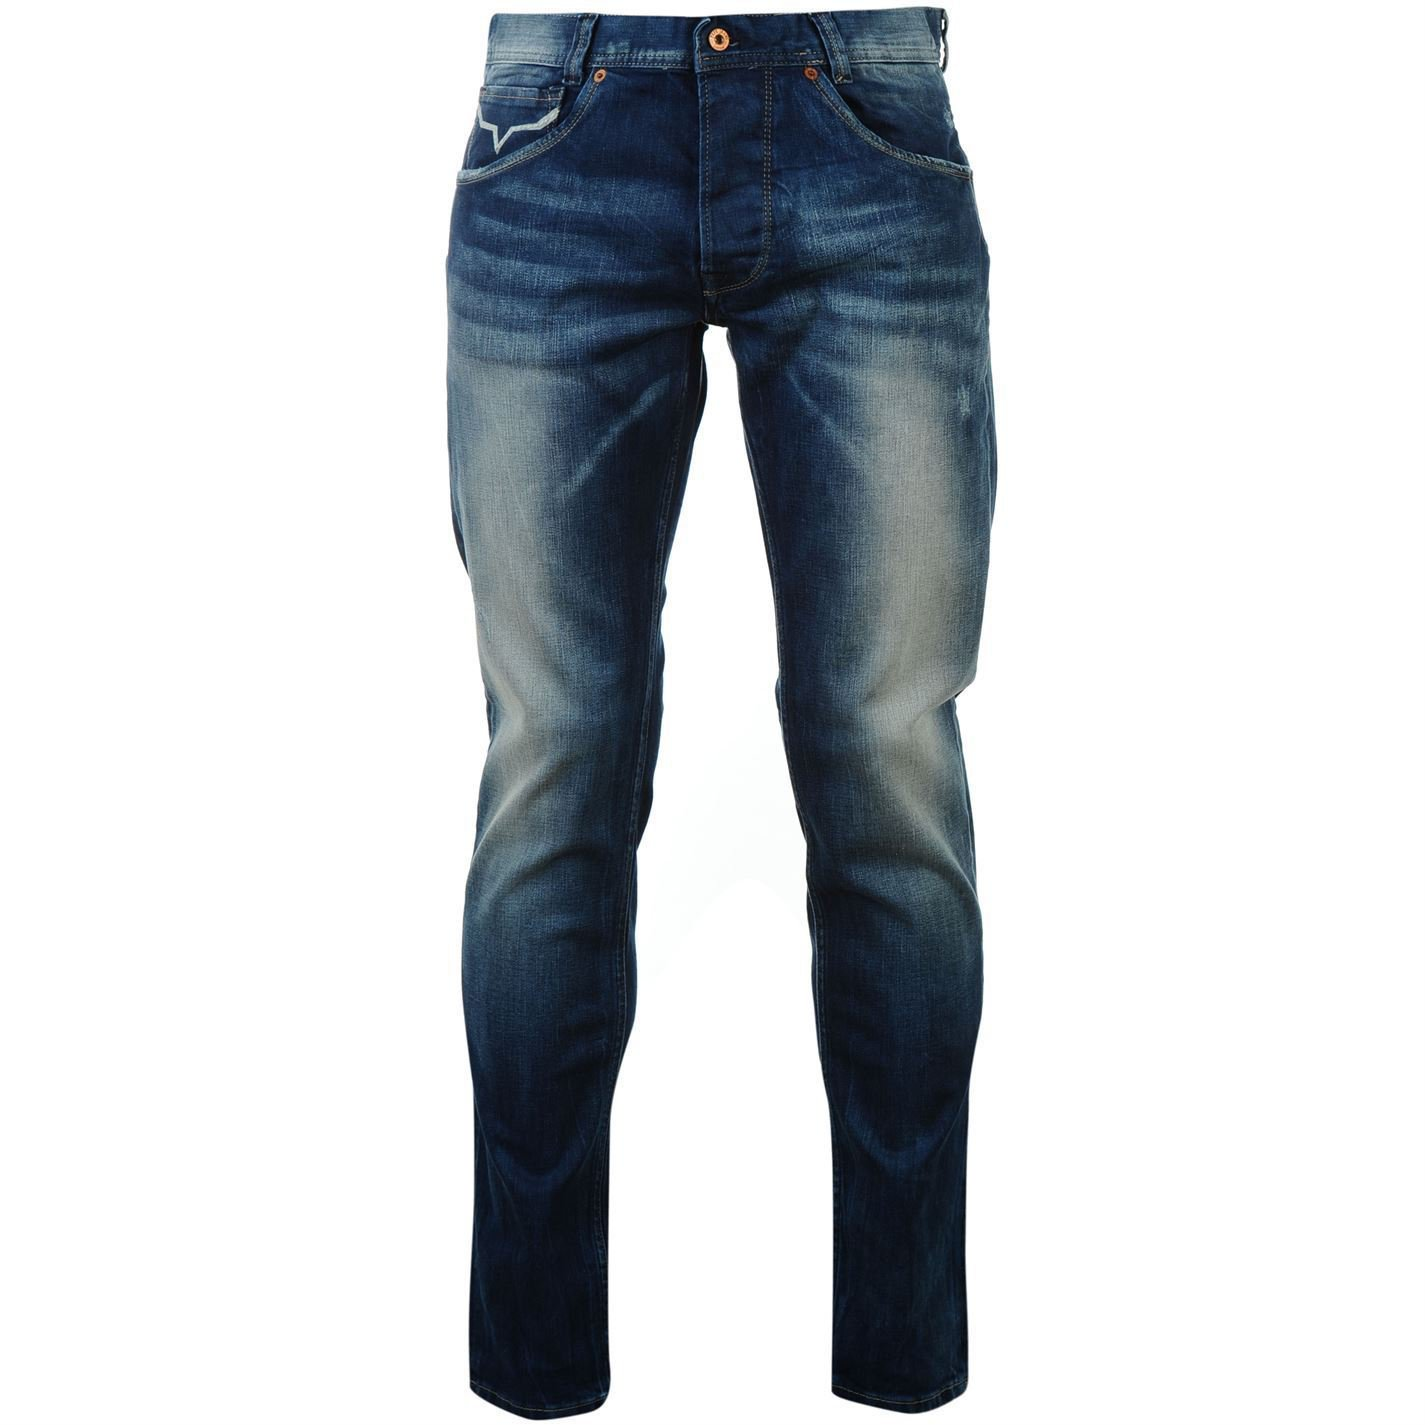 Pepe Jeans Mens Wickers JeanL34 Casual Everyday Denim Pants Trousers Bottoms